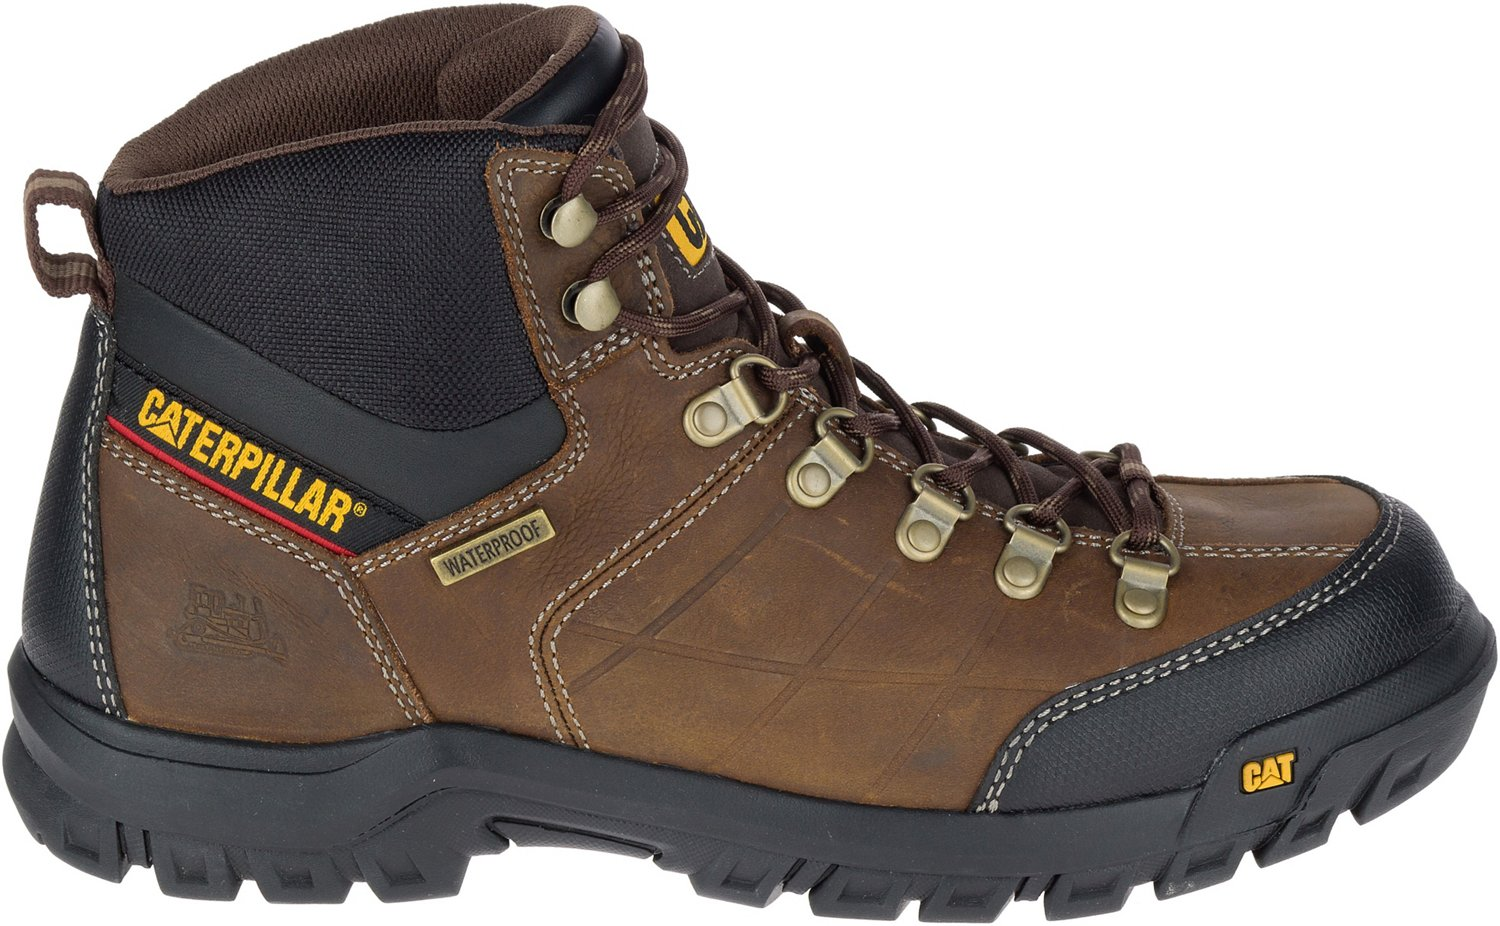 6b98c5791a6 Display product reviews for Cat Footwear Men s Threshold Waterproof Work  Boots